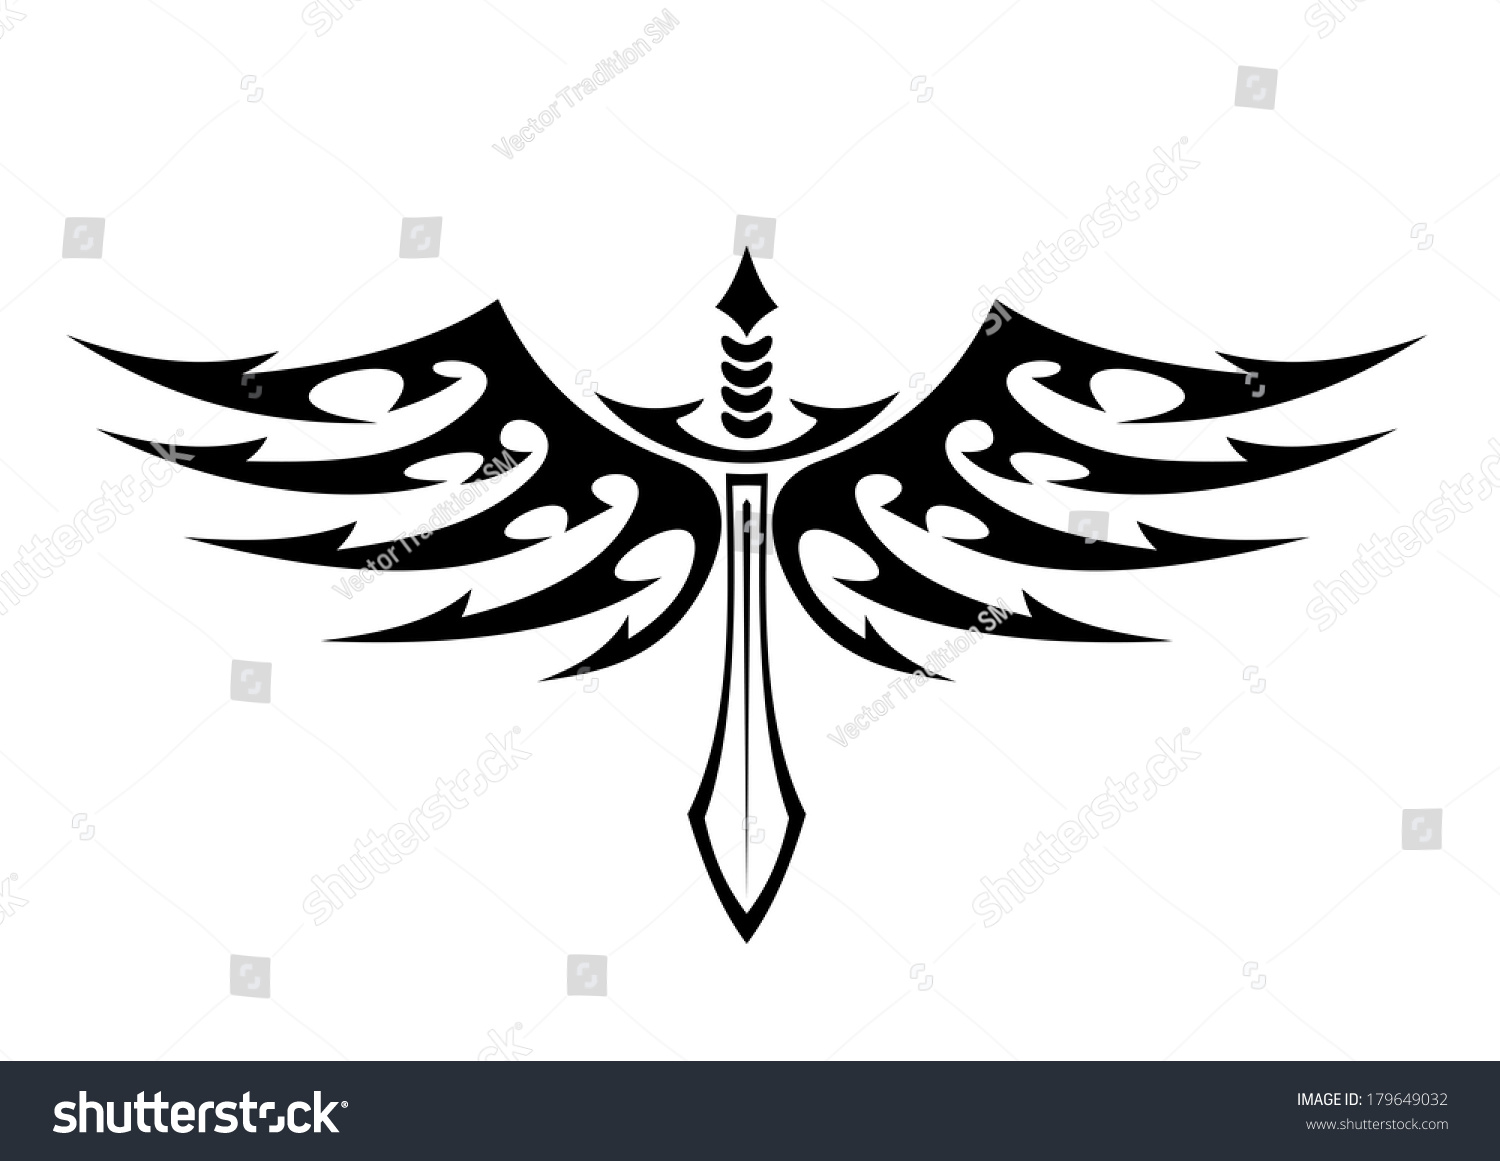 black and white vector illustration of a winged sword